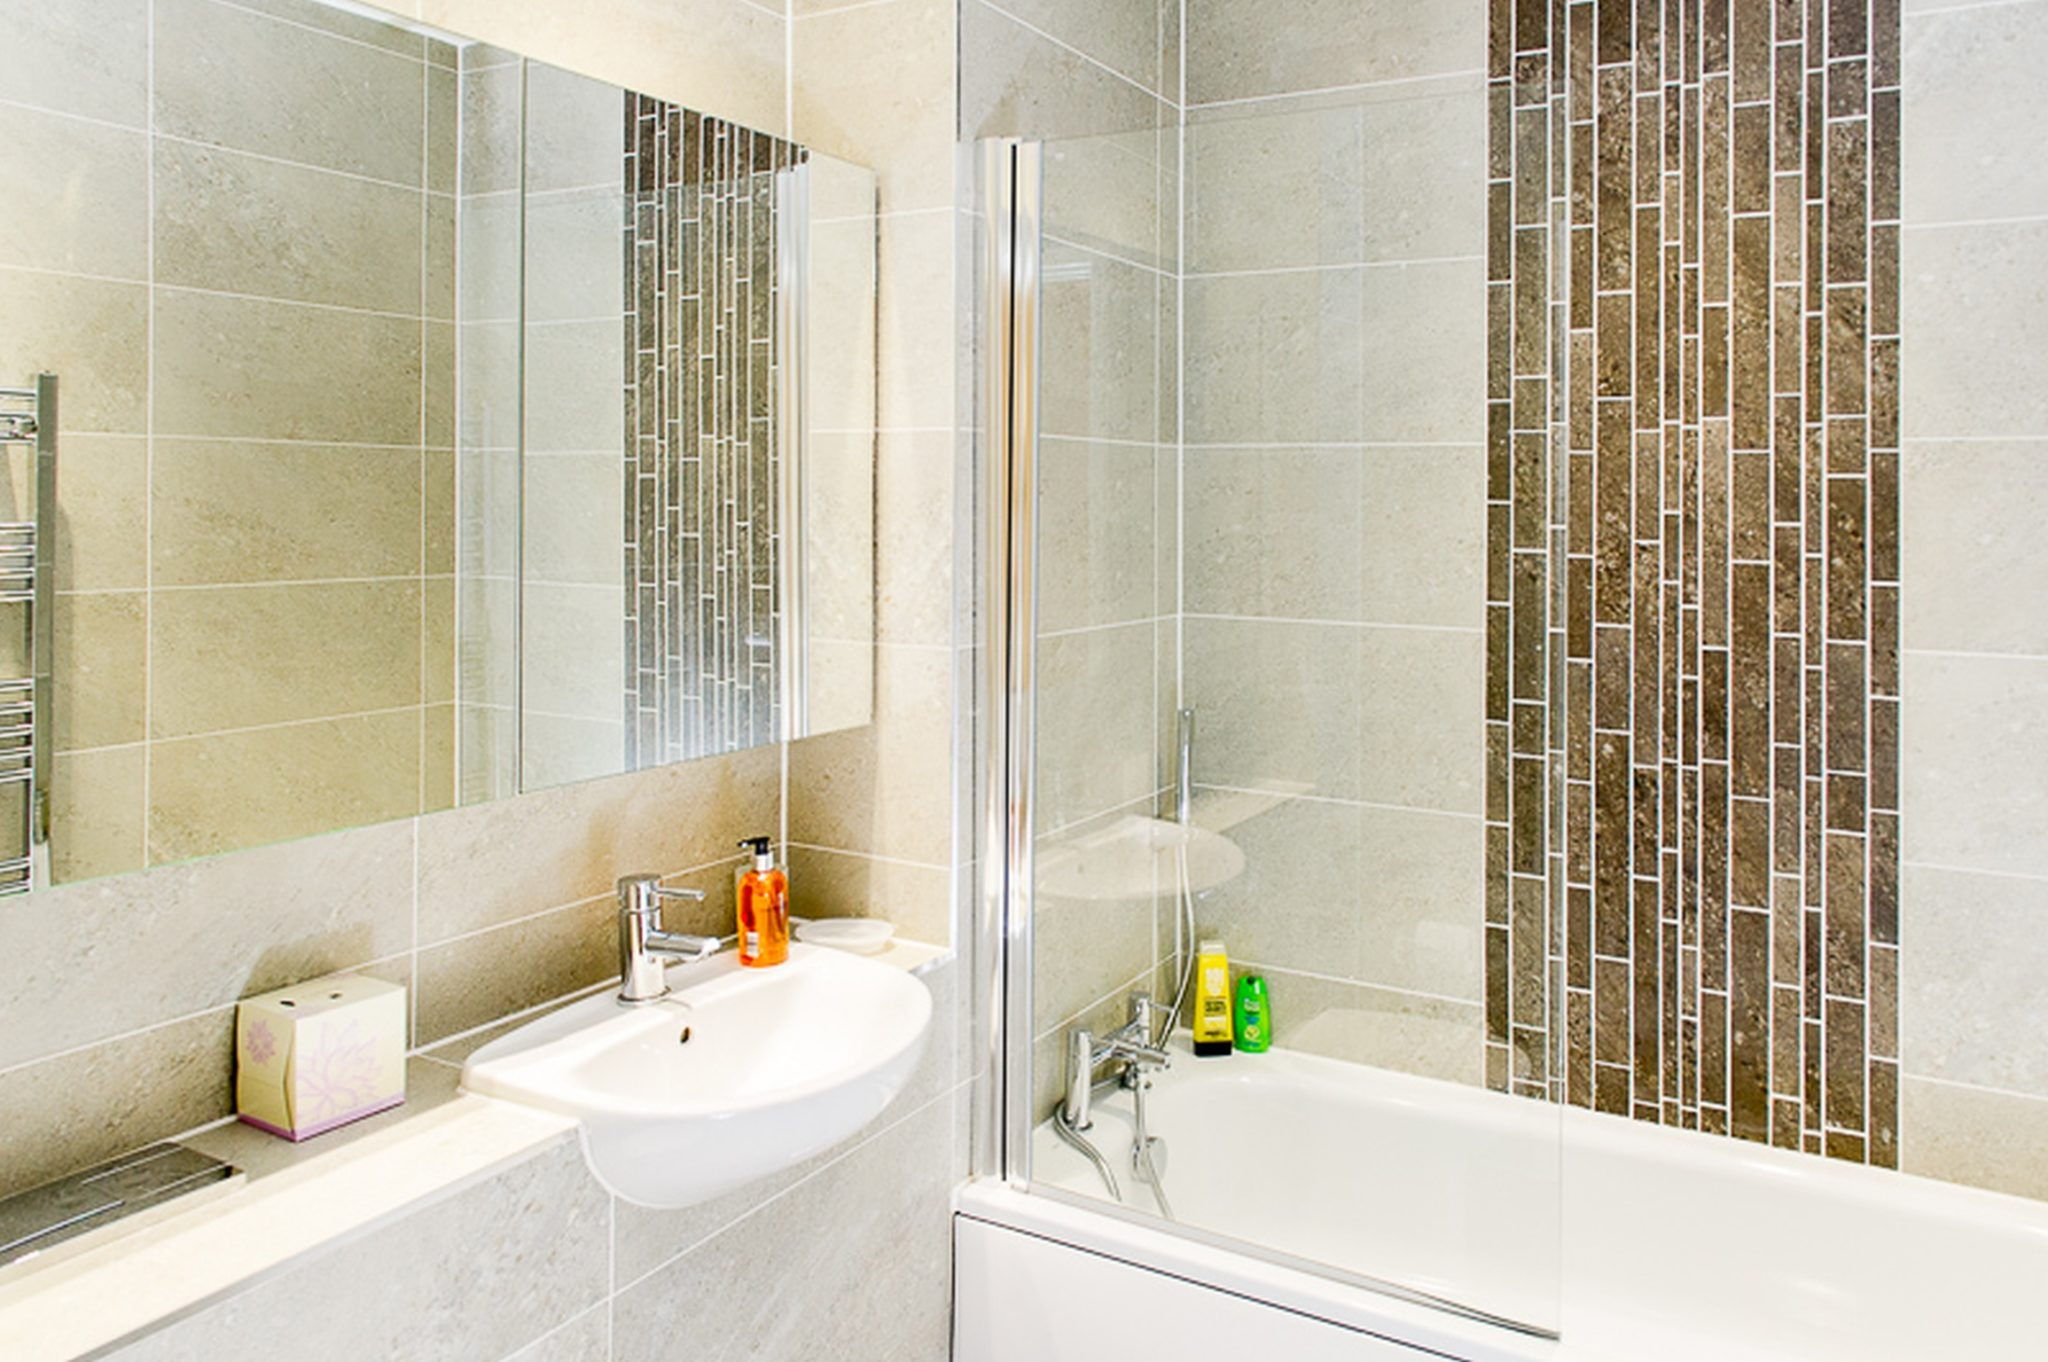 Book-Serviced-Accommodation-West-Drayton!-Available-now-Short-Let-Apartments-in-West-London.-Free-on-site-Parking-+-Private-Balcony/Terrace-I-All-Bills-Incl